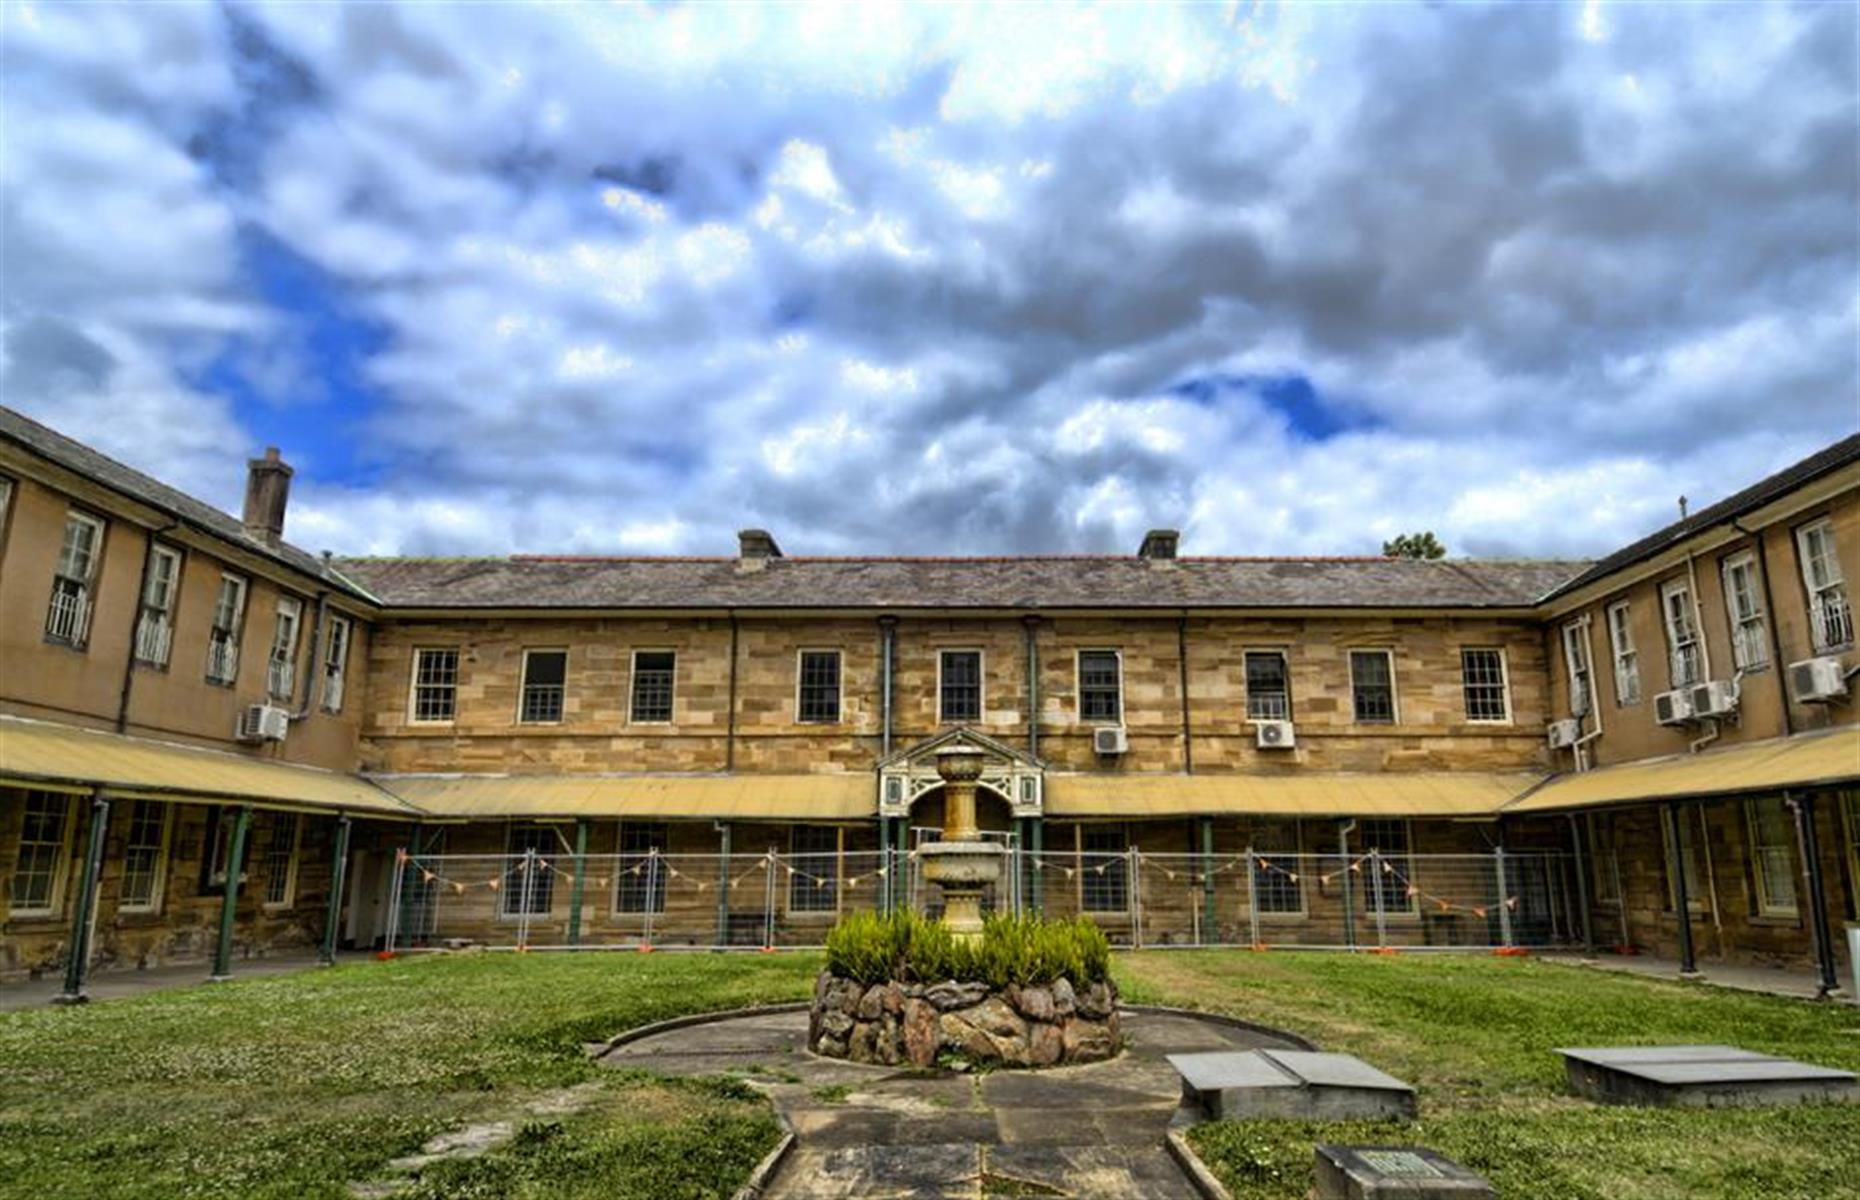 Slide 24 of 64: Tarban Creek Asylum, later renamed Gladesville, in New South Wales has a dark history indeed. Opened in 1838 and perched on the shores of the Parramatta River in the Sydney suburb of Gladesville, the psychiatric hospital was tipped as the first purpose-built asylum in the area. The facility was originally intended for just 60 patients but it's reported that more than 100 people were admitted here by the 1840s.